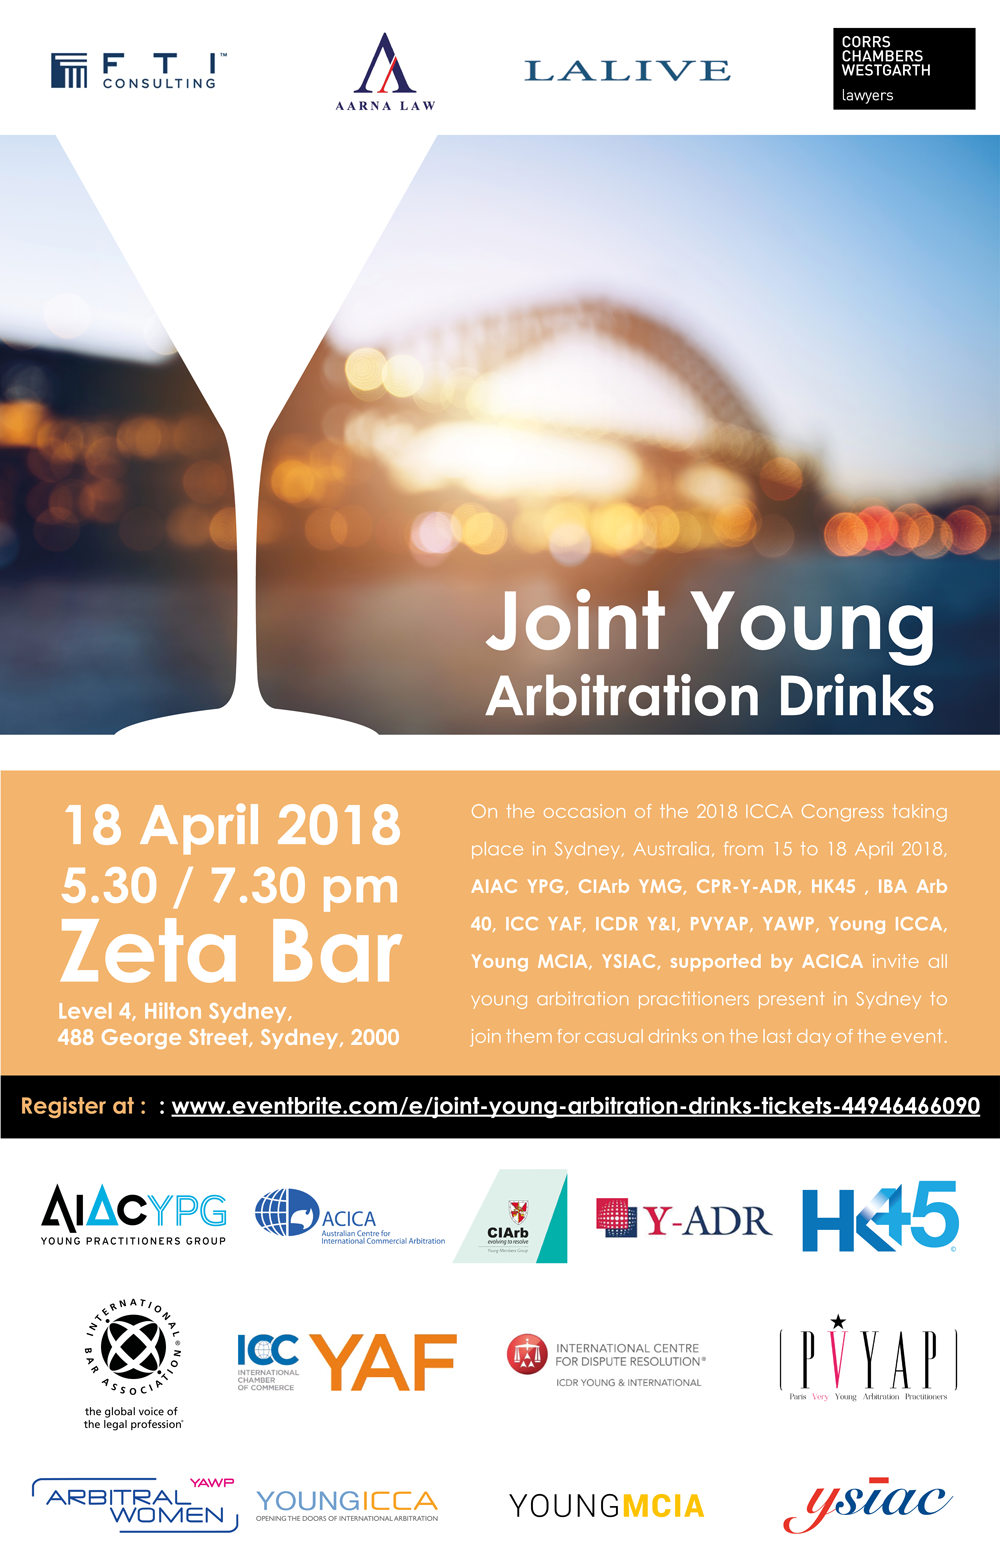 Joint-Young-Drinks-ICCA